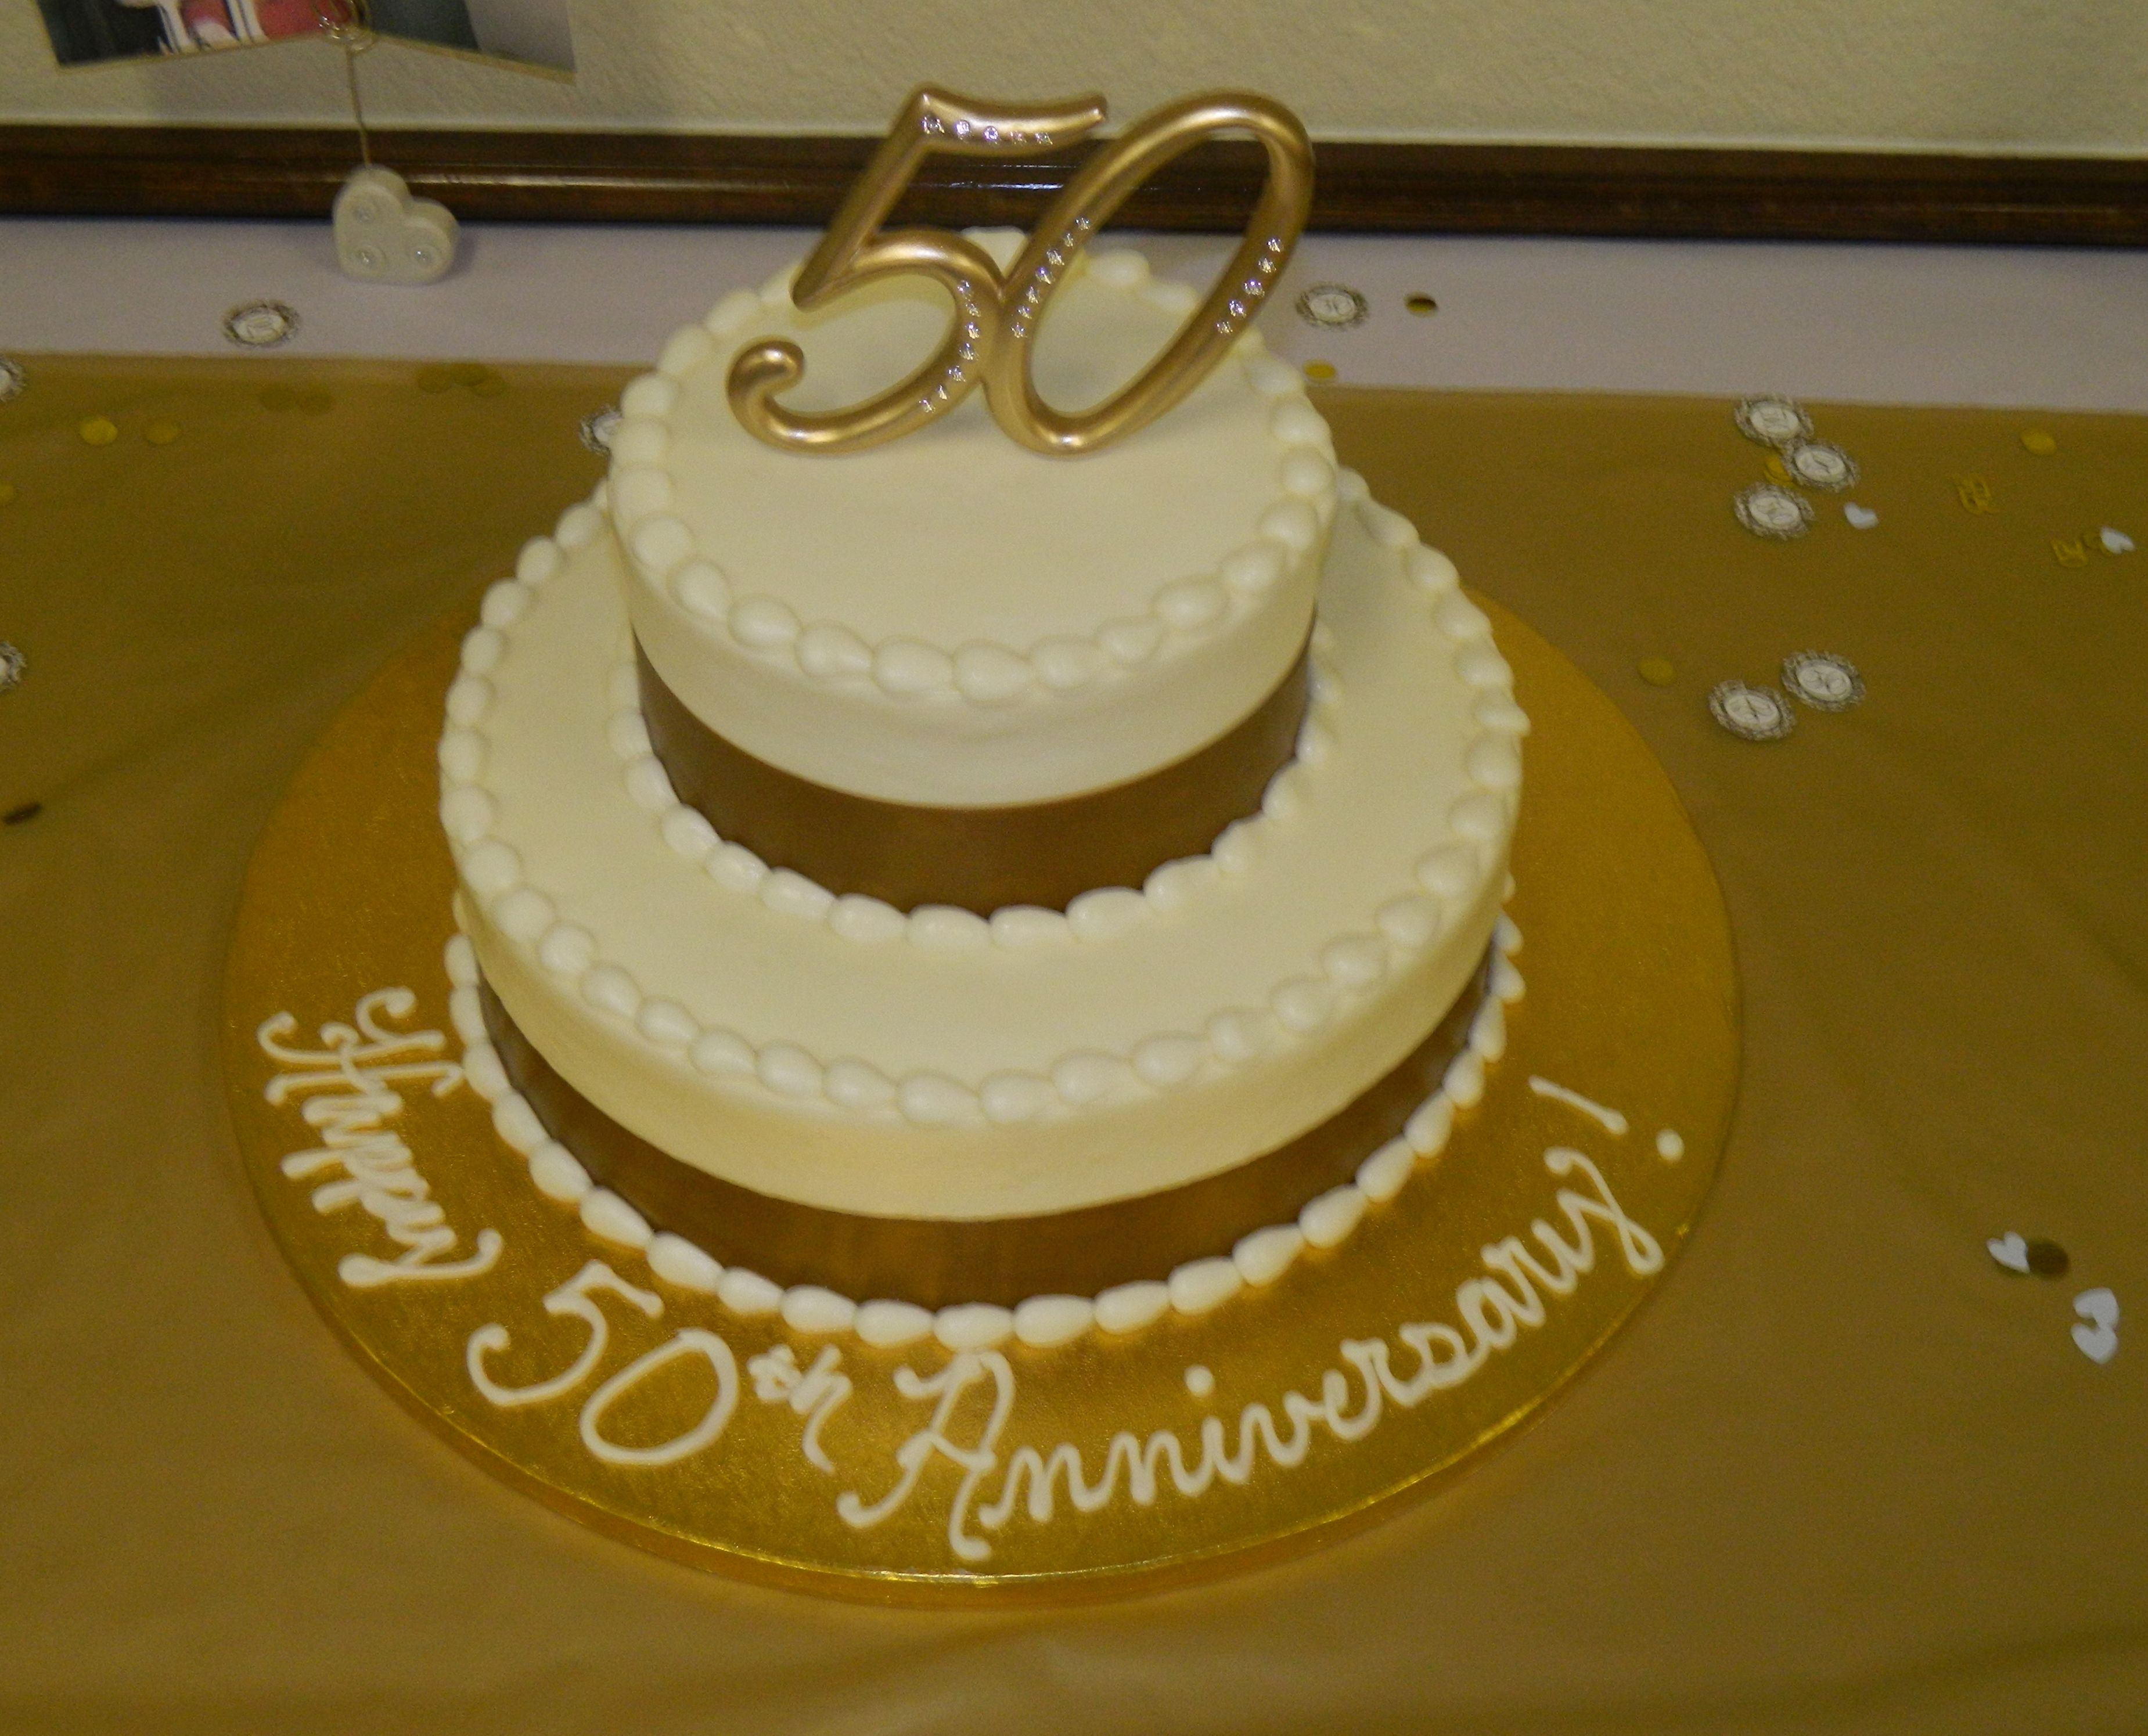 50th cake idea decorated wedding and anniversary cake for 50th wedding anniversary cake decoration ideas